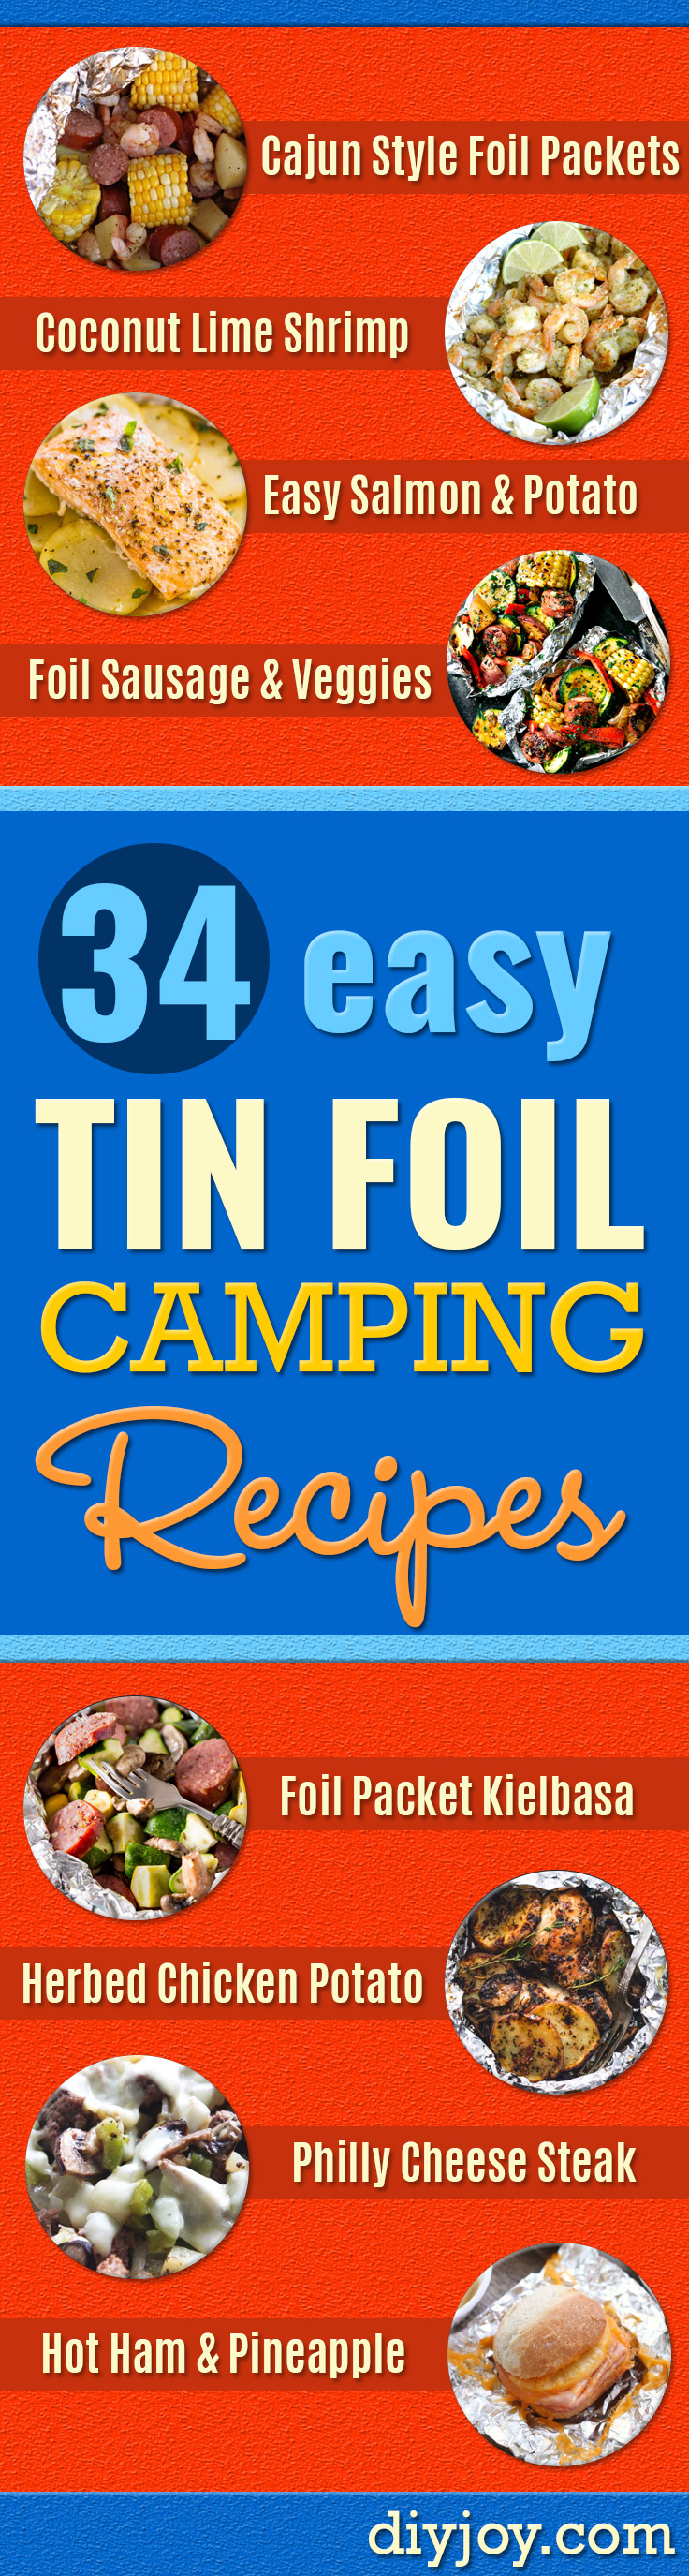 tin foil recipes camping - foil packet recipes dinner - Ideas for Camping Trips -Chicken, Healthy, Fish, Steak , Easy Make Ahead Recipe Ideas for the Campfire. Breakfast, Lunch, Dinner and Dessert